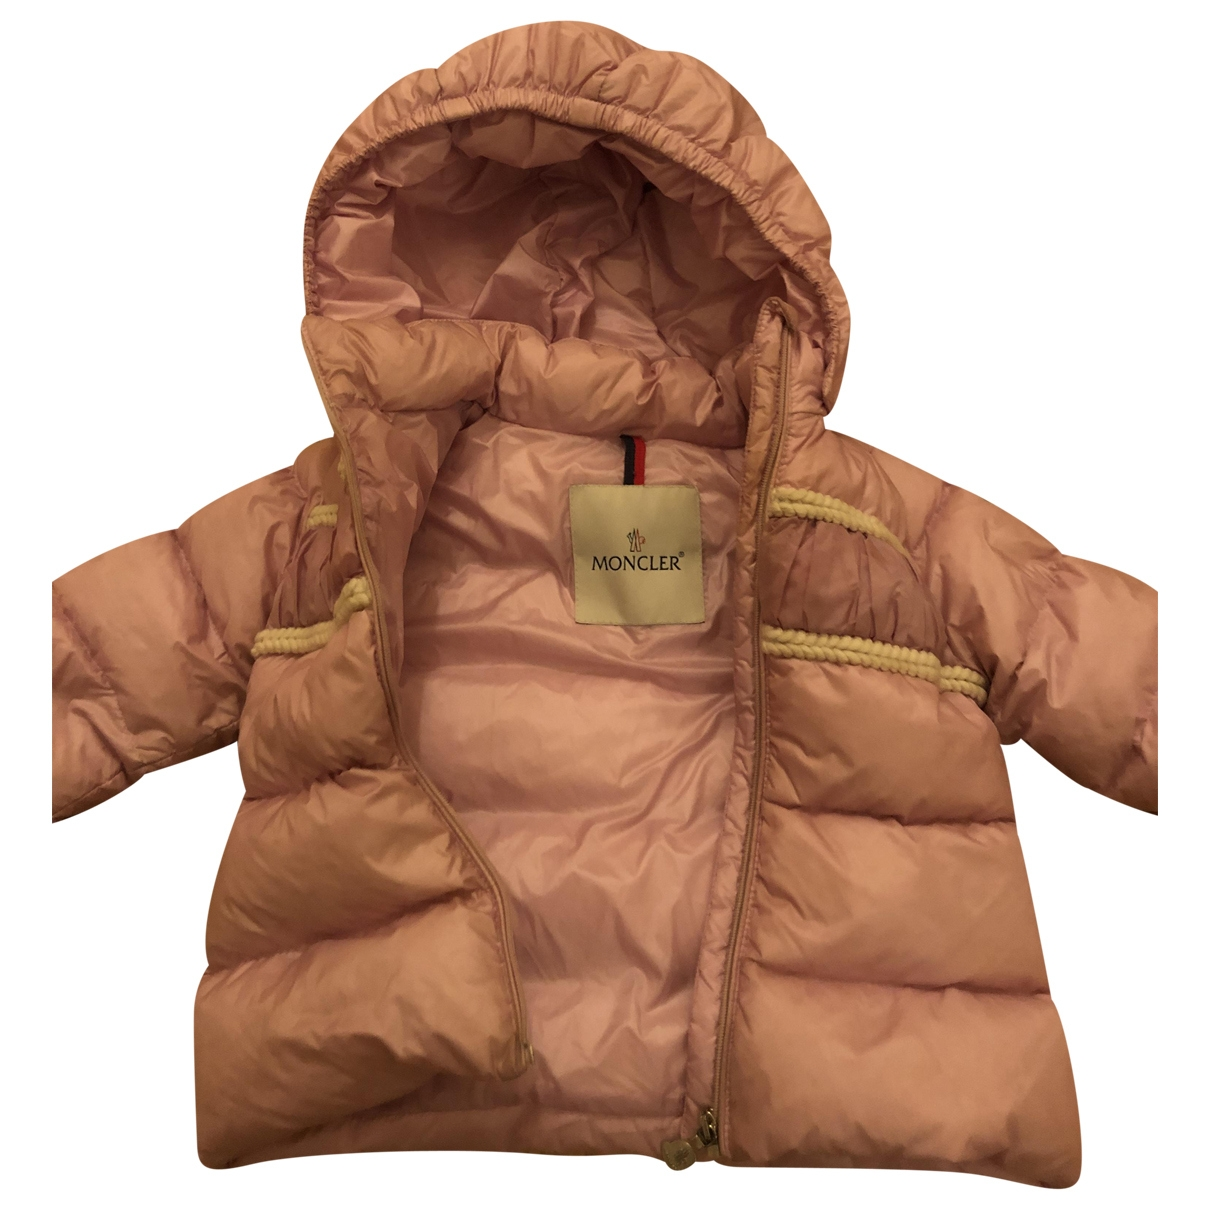 Moncler Classic Pink Cotton jacket & coat for Kids 18 months - up to 81cm FR